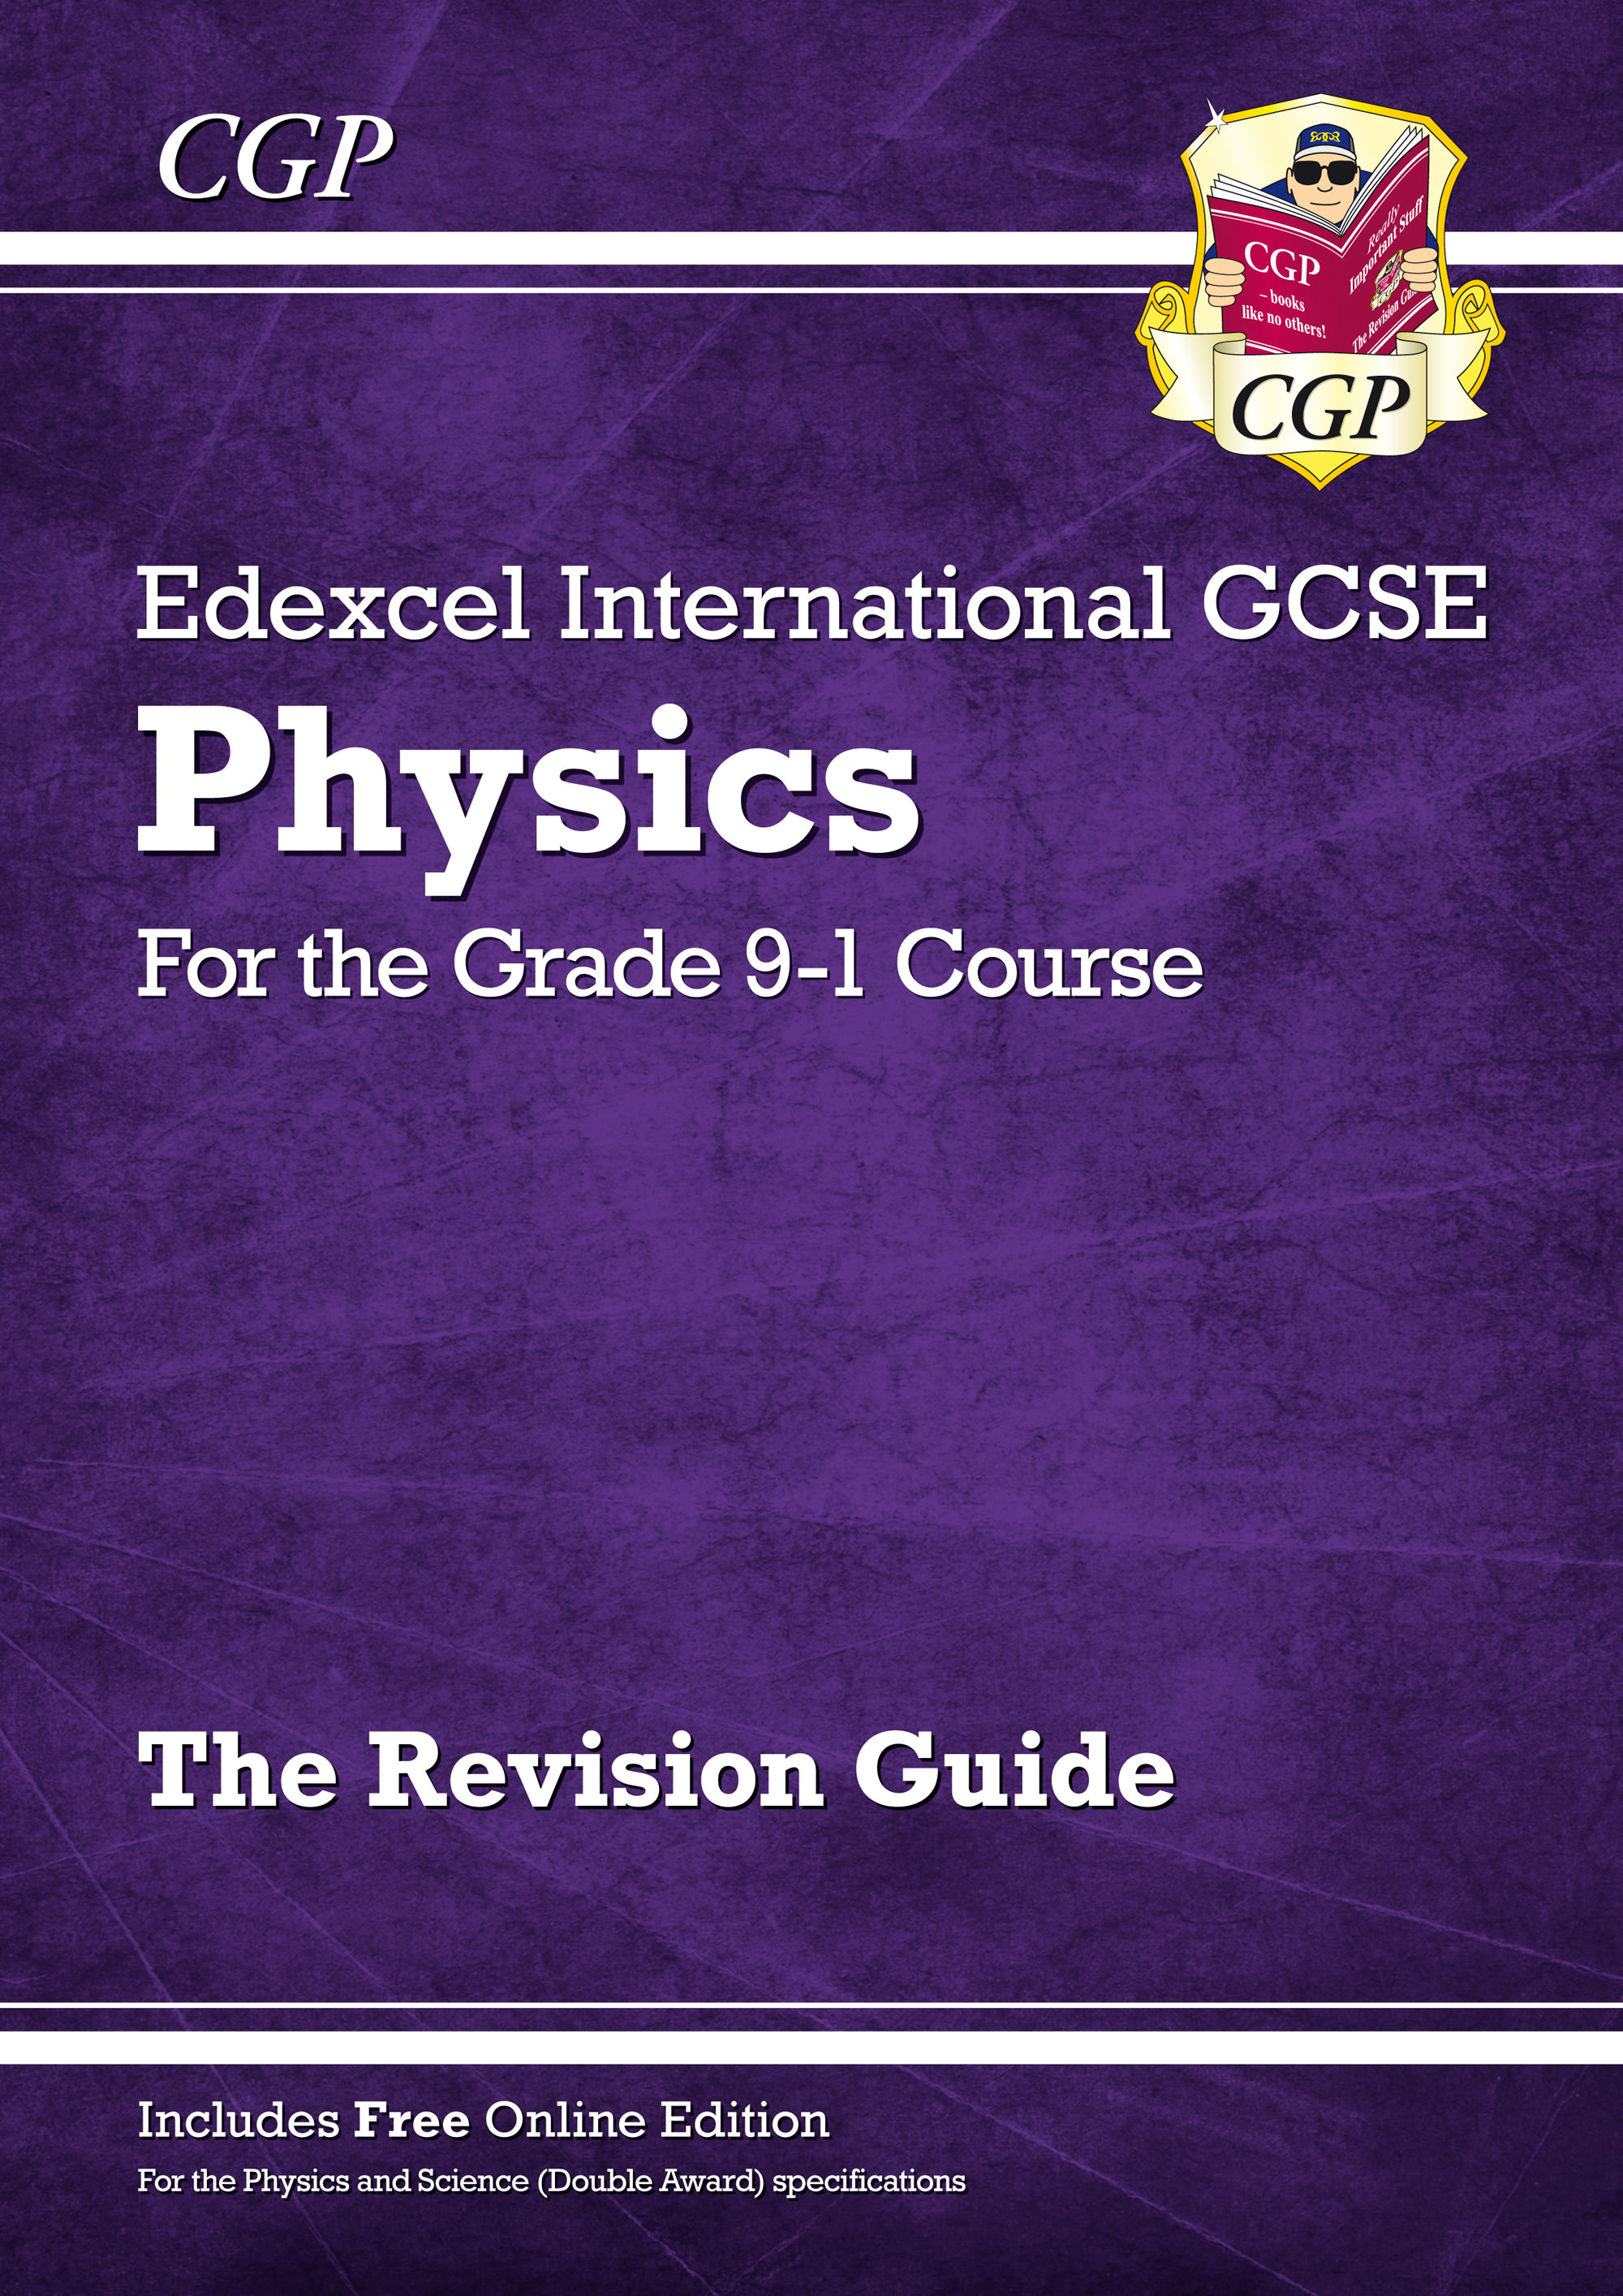 PERI42 - Grade 9-1 Edexcel International GCSE Physics: Revision Guide with Online Edition